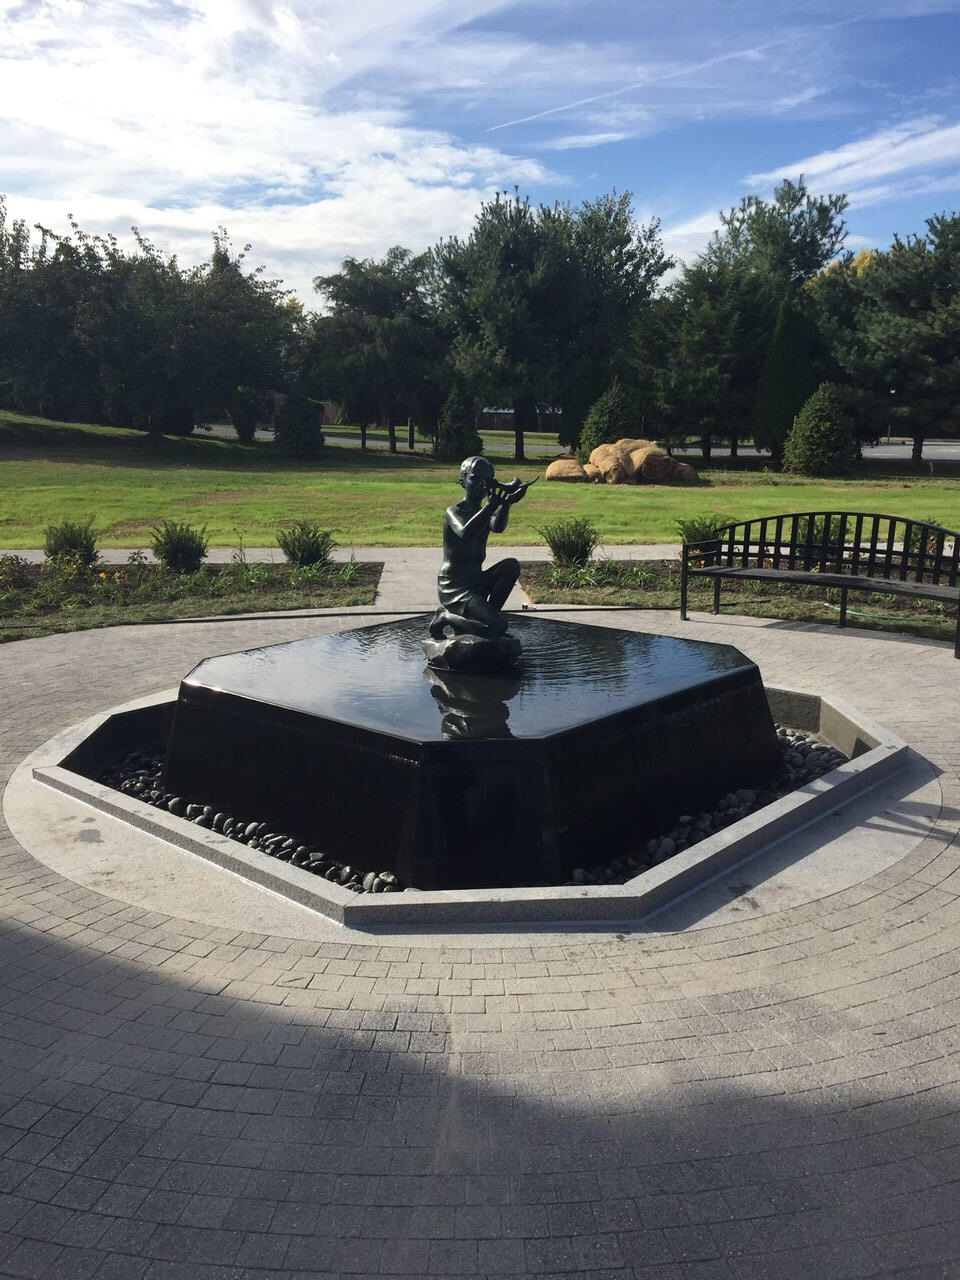 The John Herman Memorial fountain by Ray Kaskey in Frederick, Maryland.